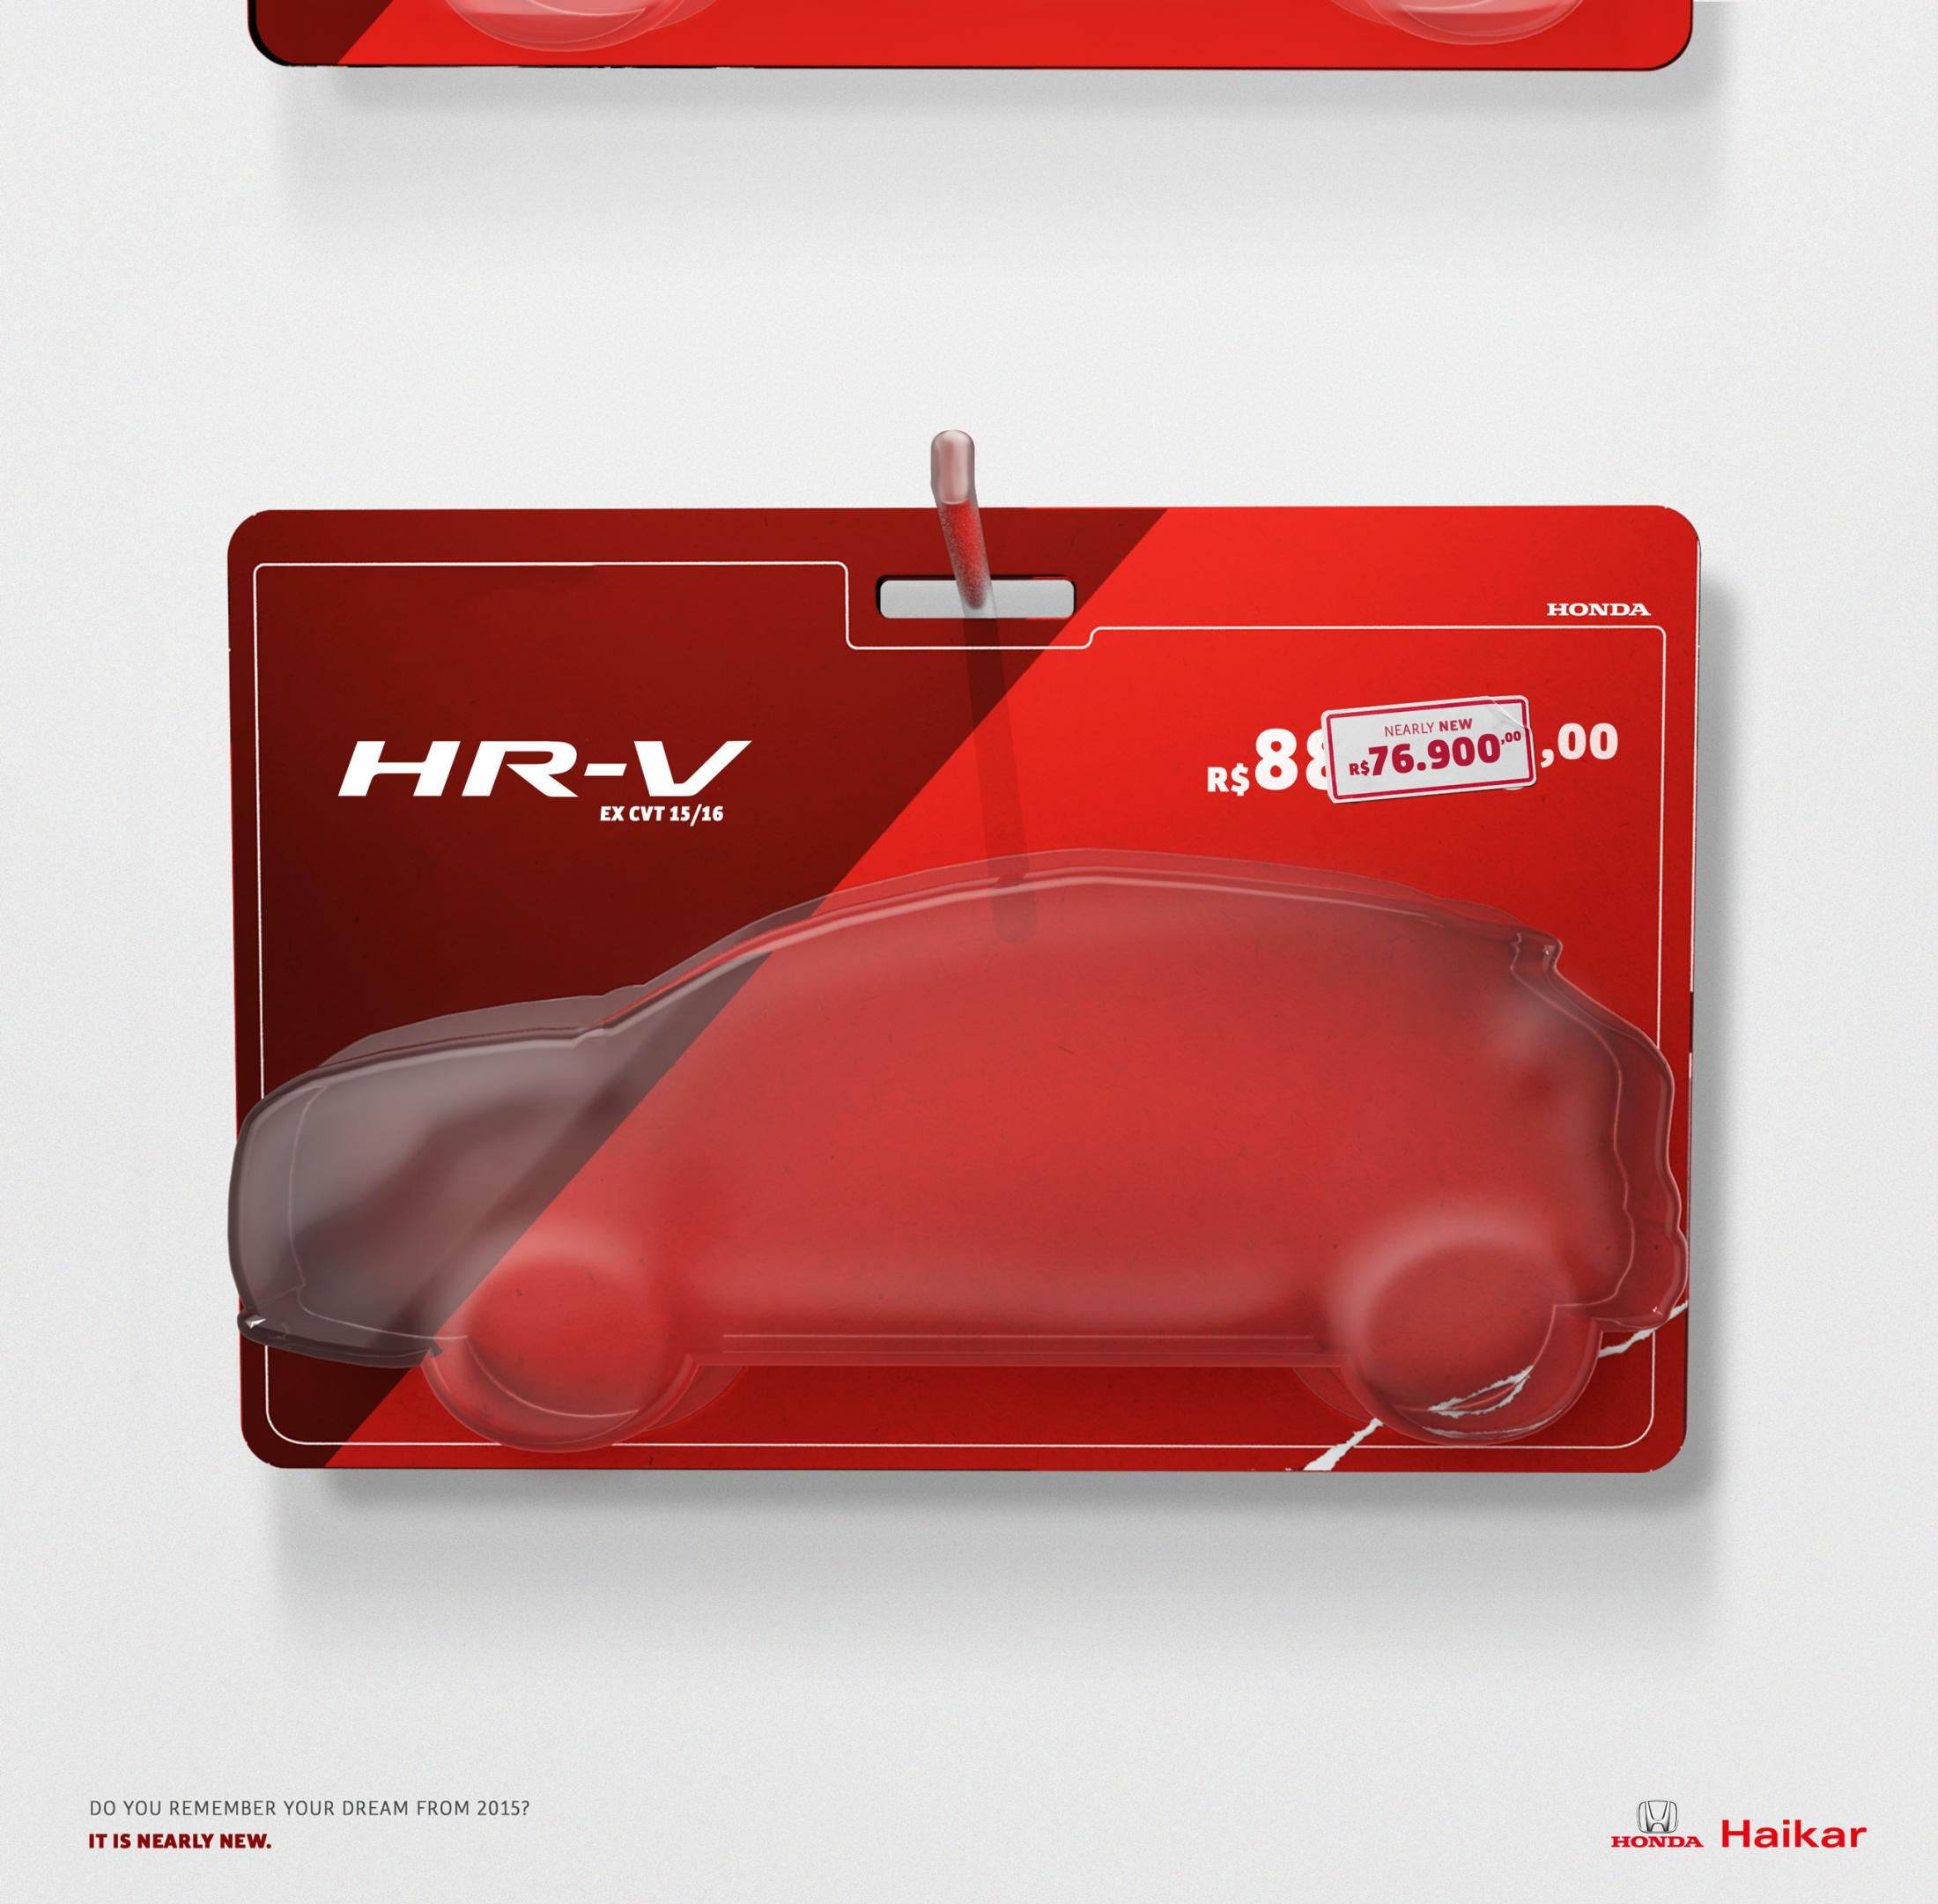 Honda Print Ad - It is nearly new